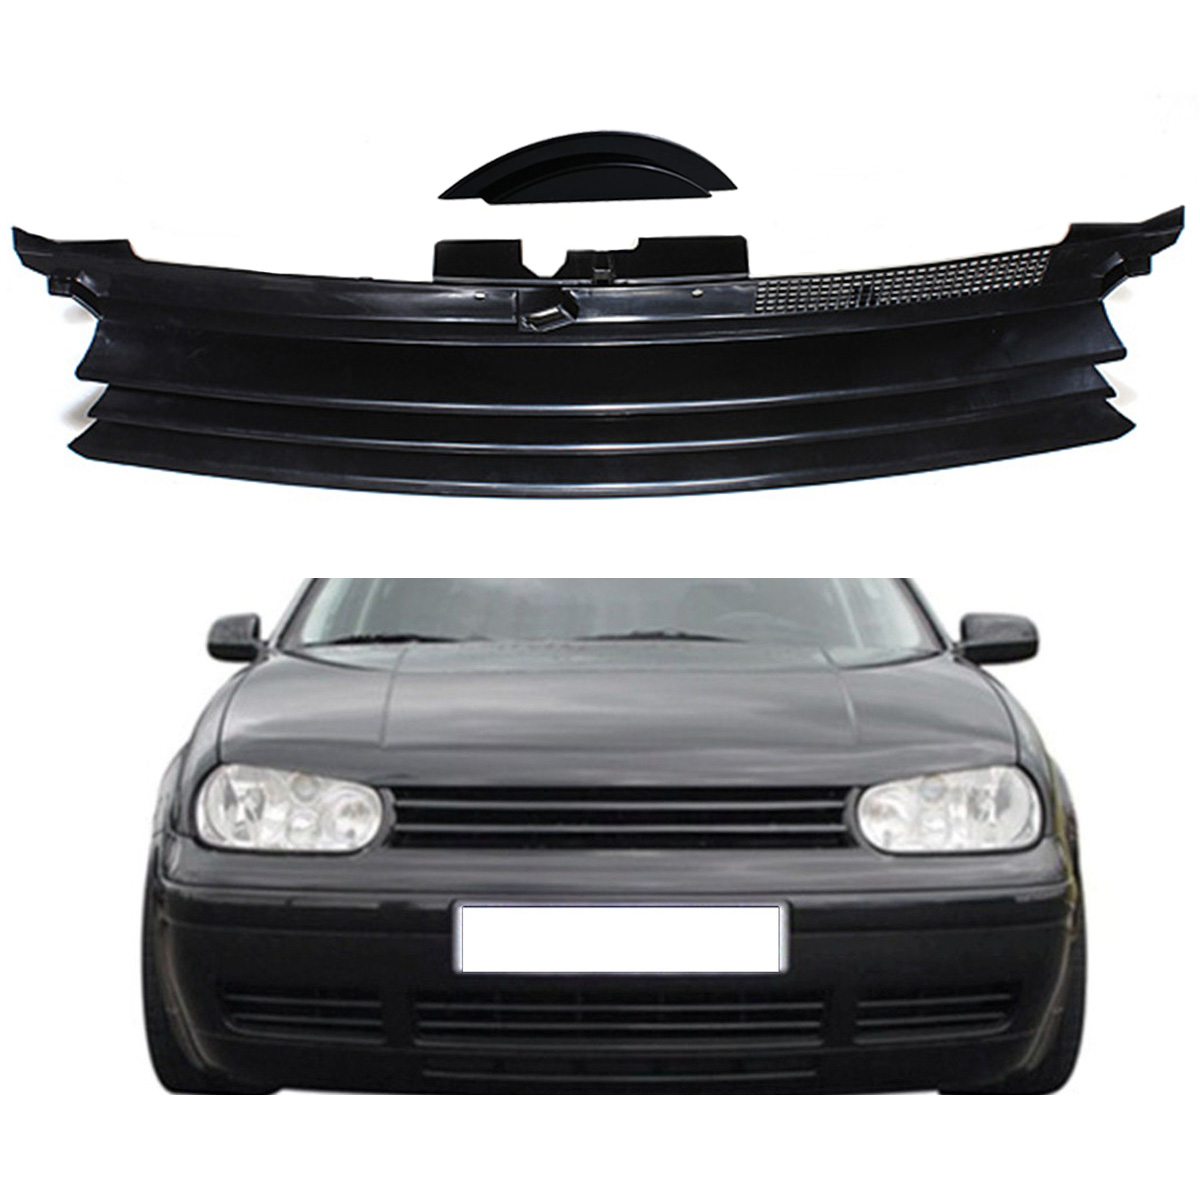 HOOD GRILL FOR AUDI 80 TYP B4 BLACK SPORT BADGELESS FRONT GRILLE DEBADGED